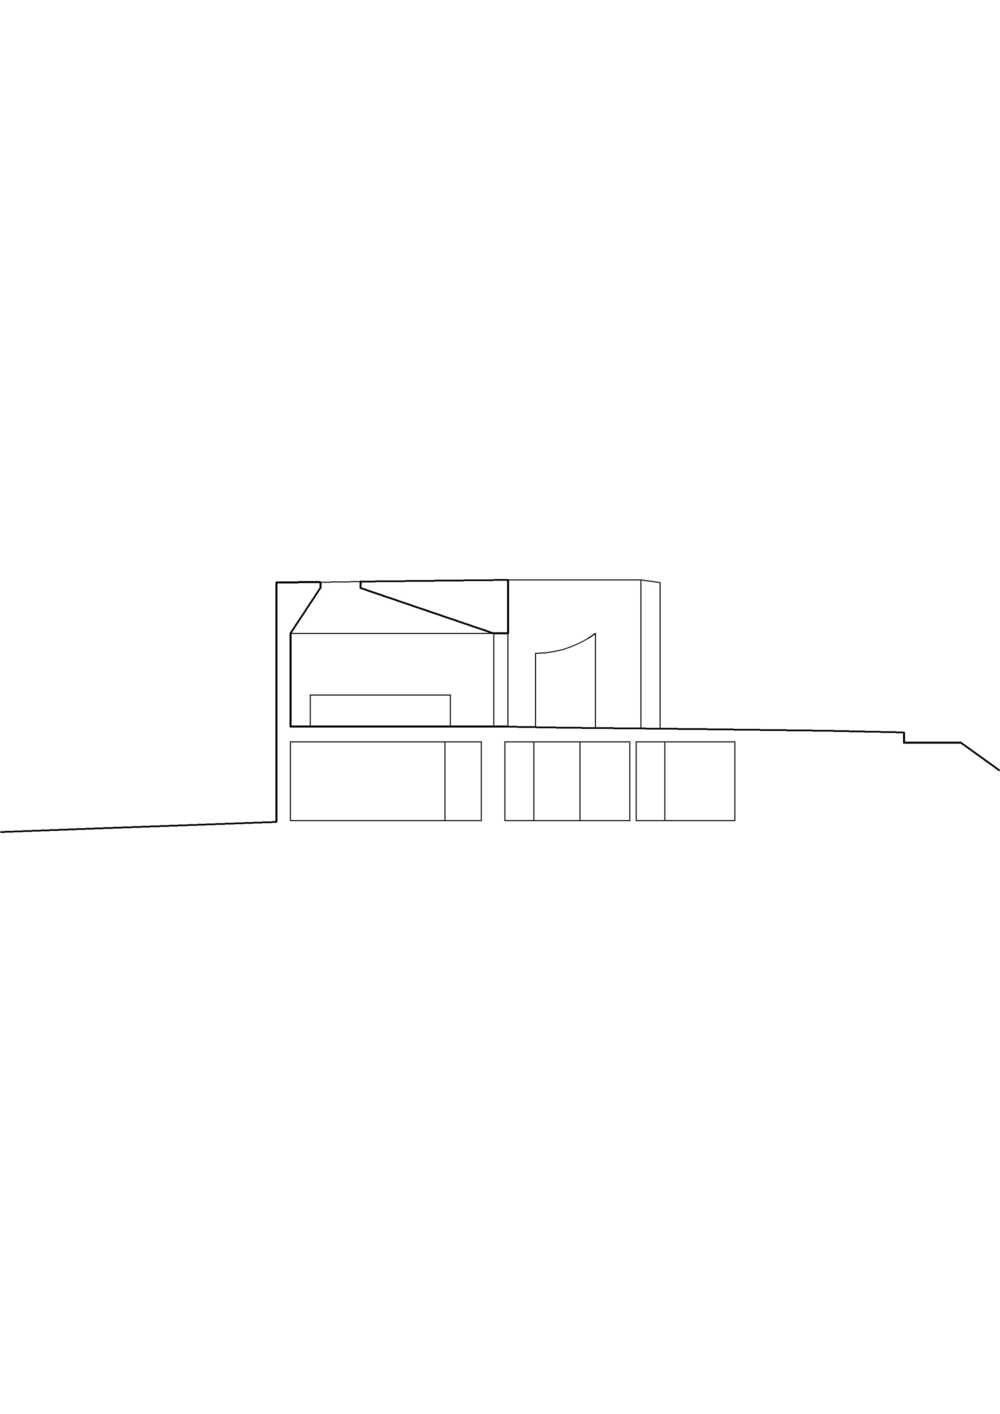 the-tree-mag-house-in-fontinha-by-manuel-aires-mateus-sia-arquitectura-370.png